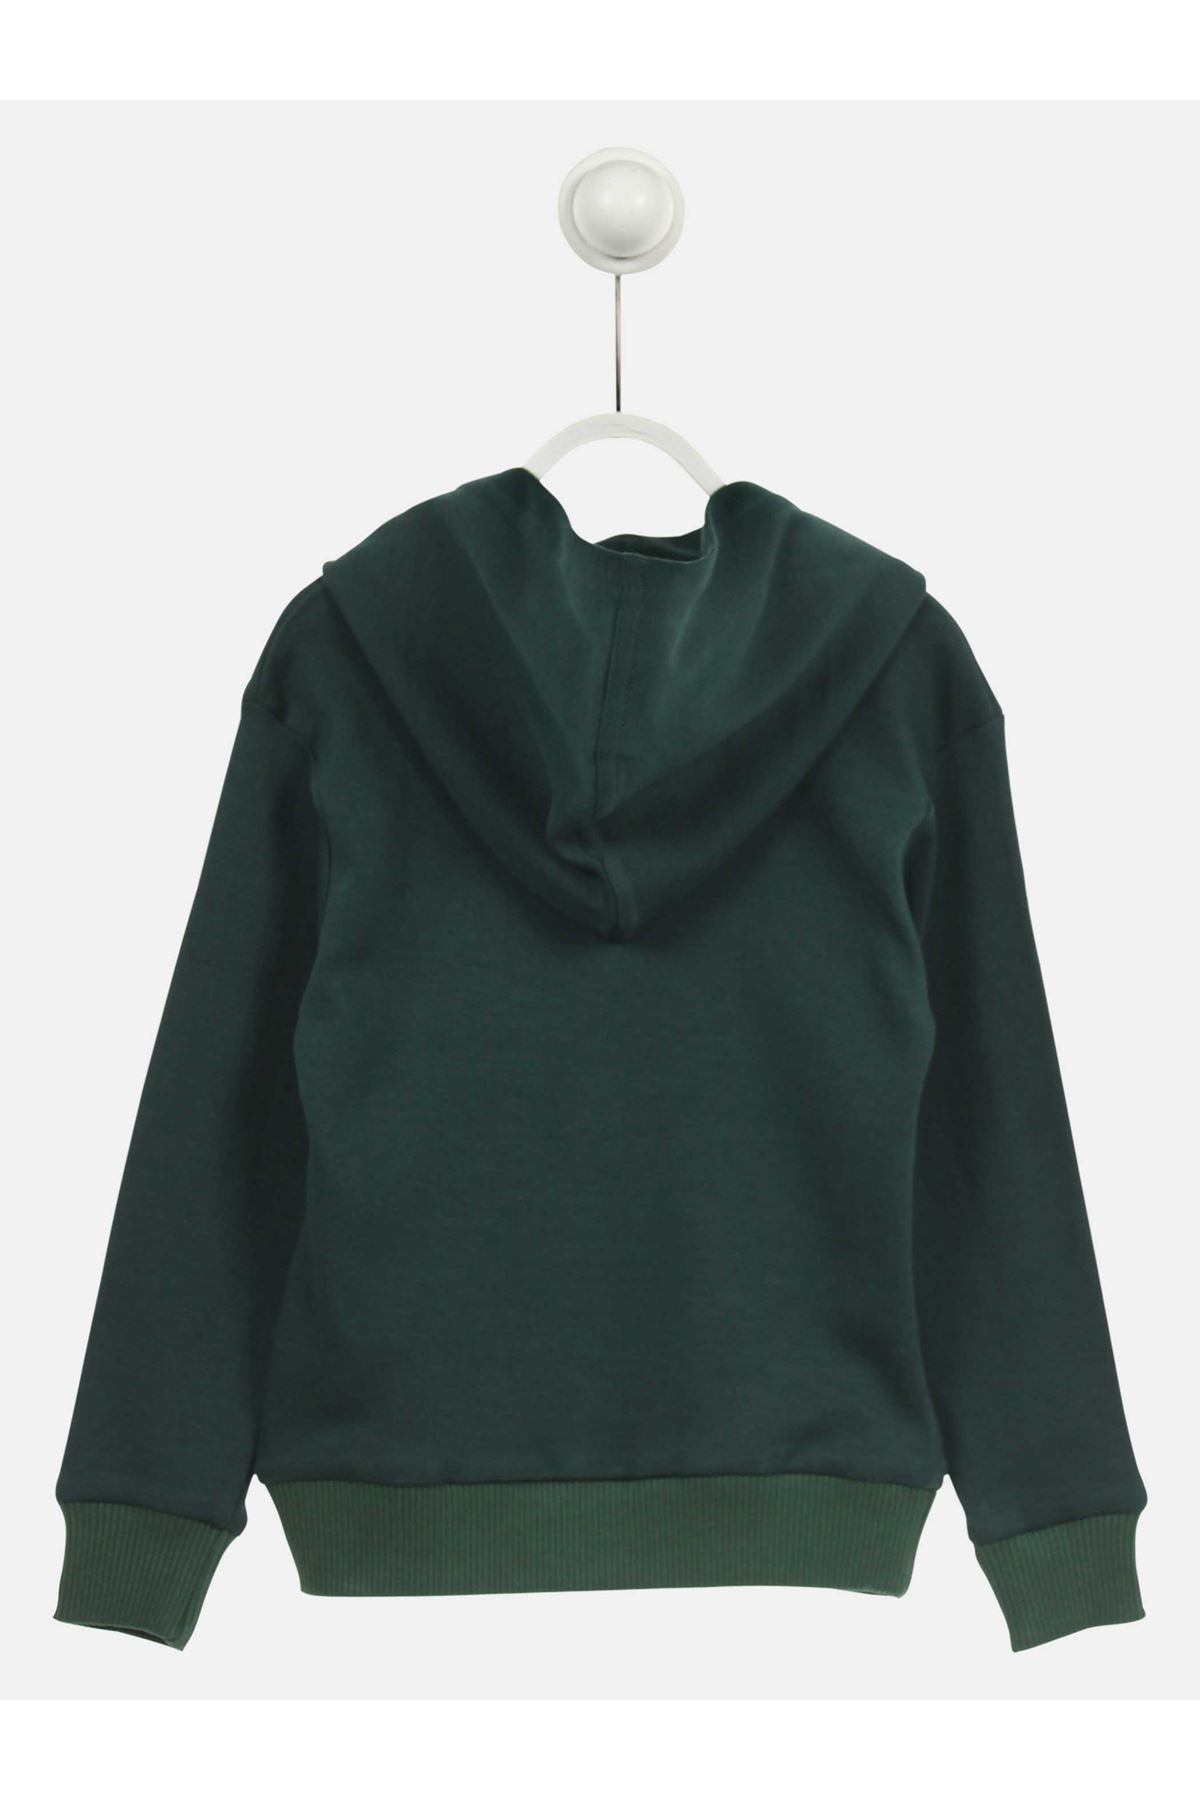 Green Male Child Hooded Sweat